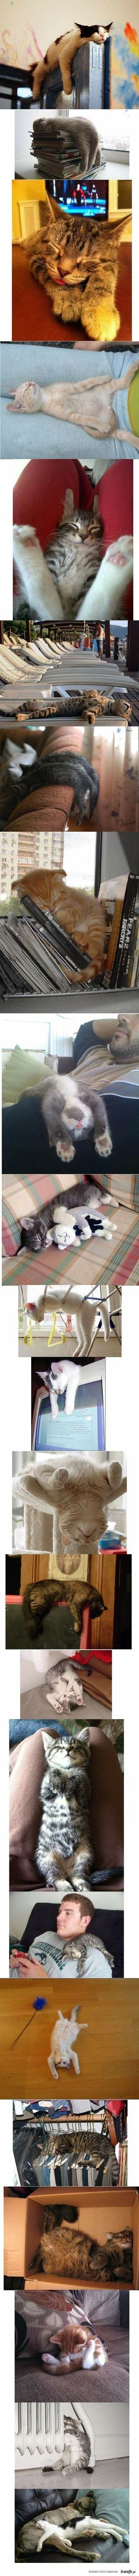 Cats will find just about anywhere to sleep.